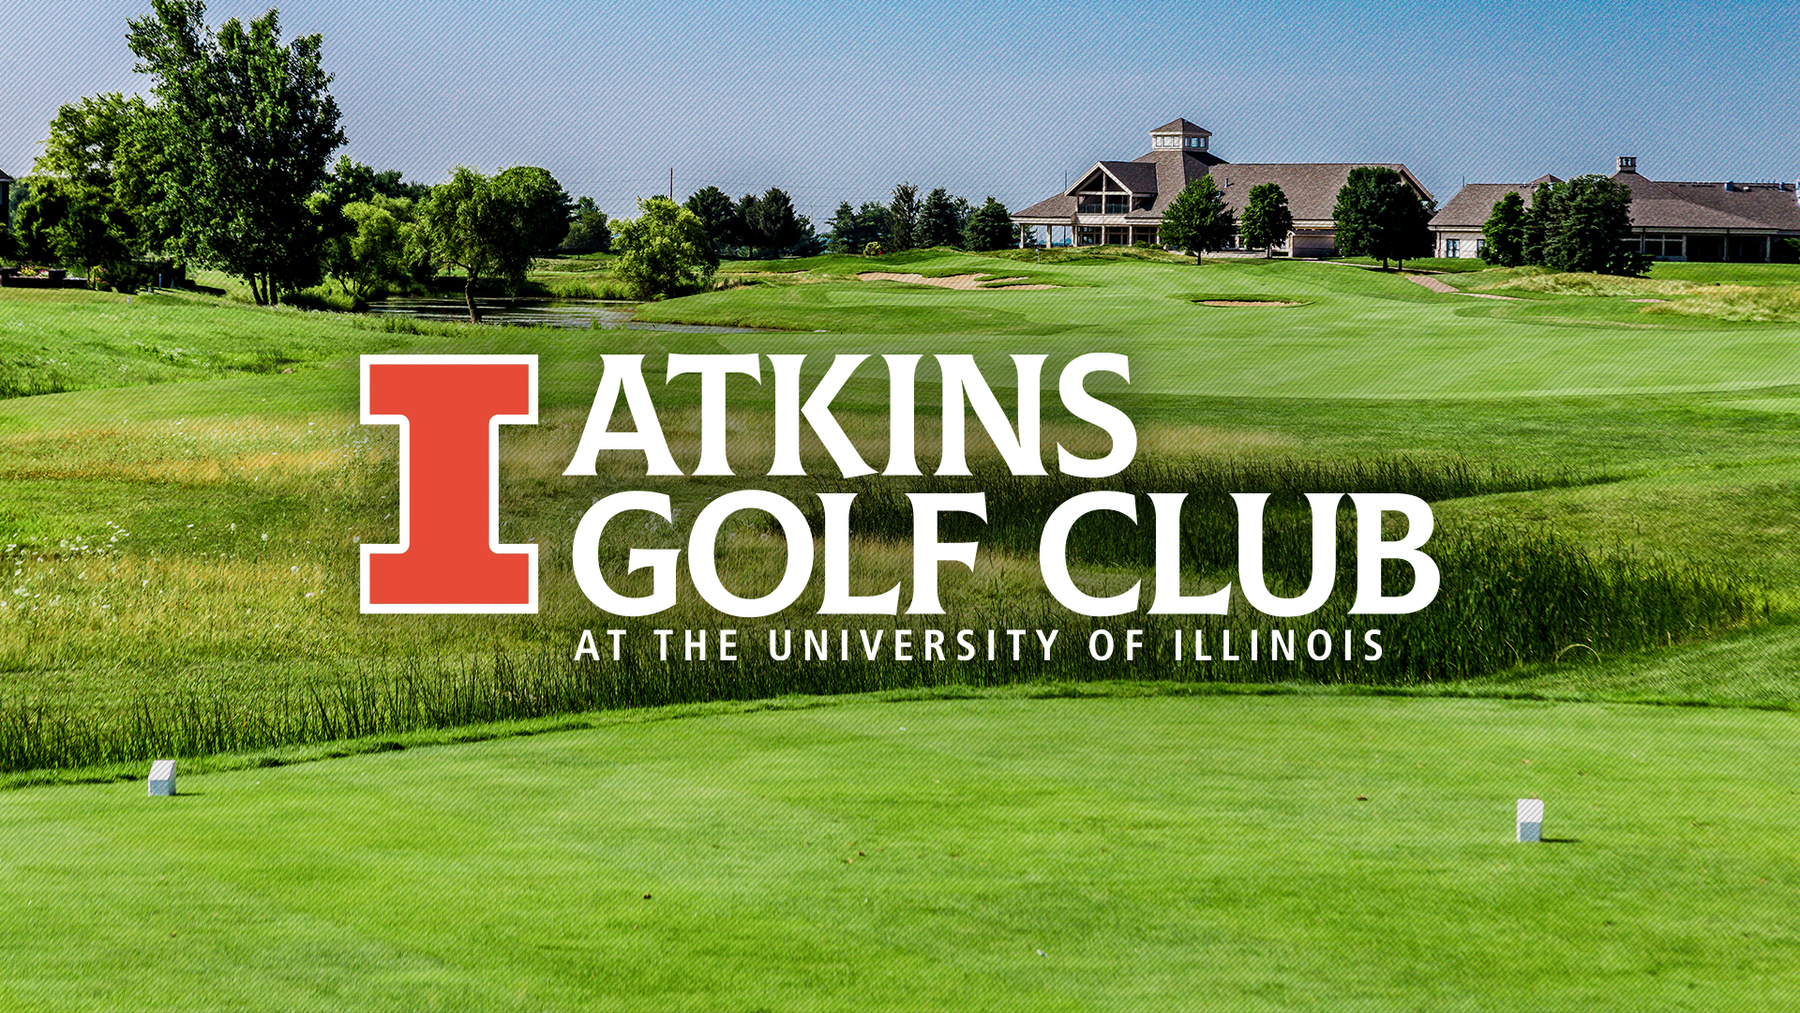 the former Stone Creek Golf Club, with overlaid text: Atkins Golf Club at the University of Illinois  at Urbana-Champaign